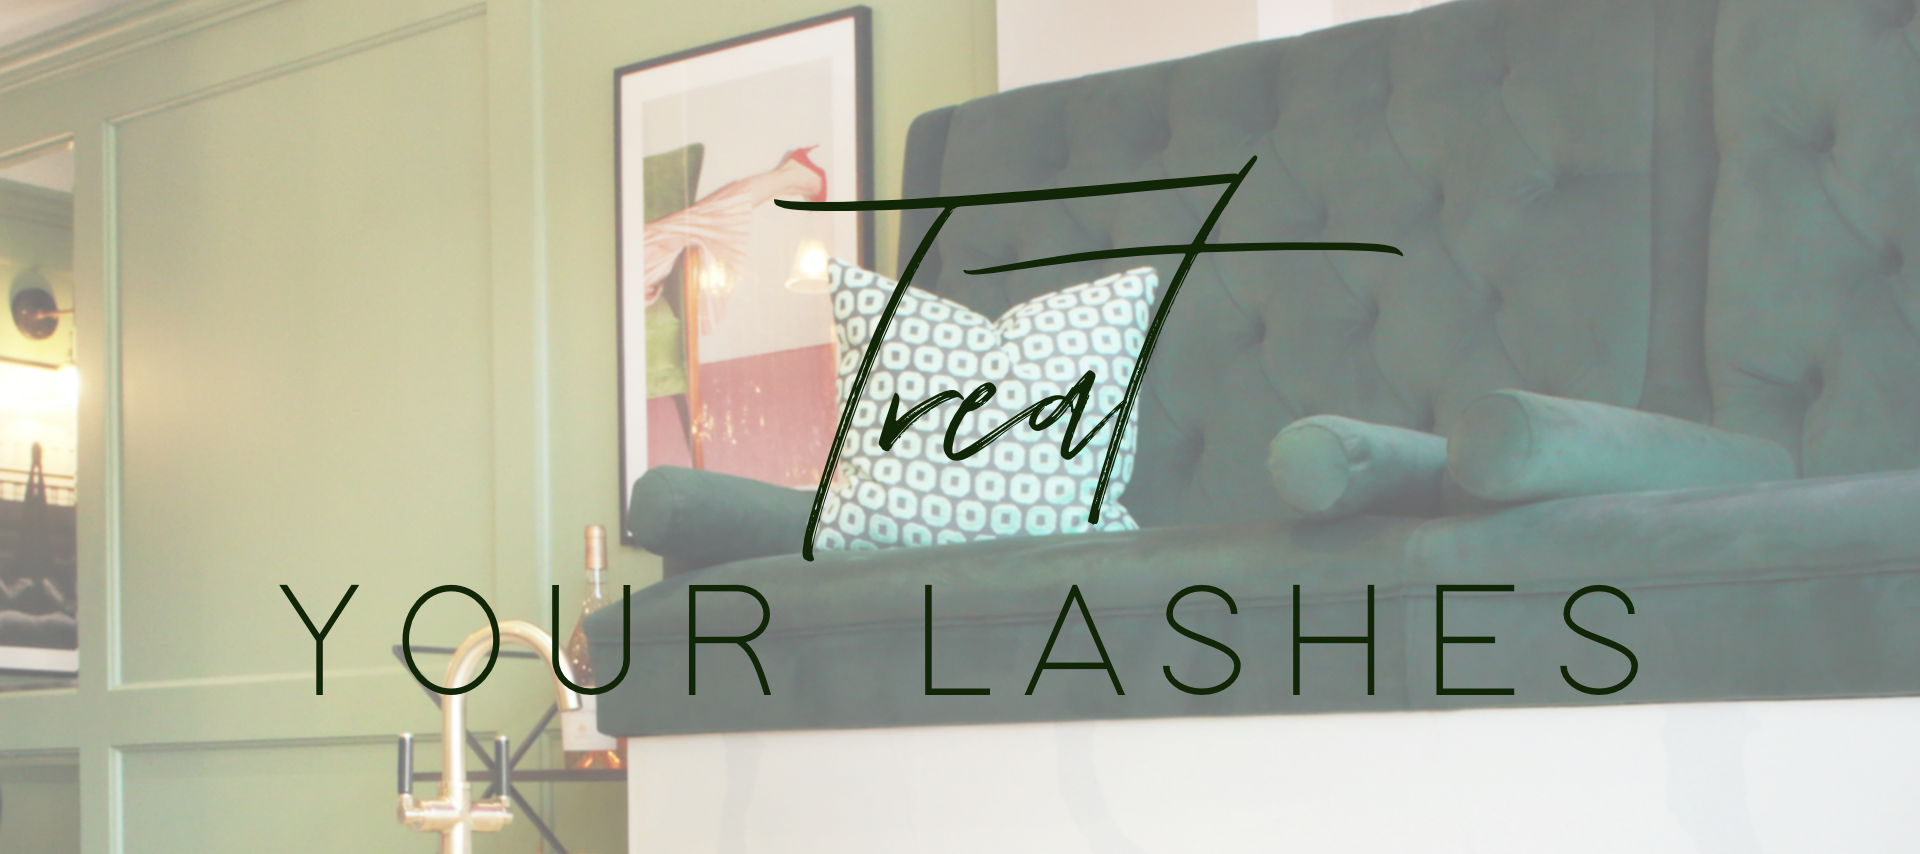 Treat Your Lashes at 12 The Green Chalfont St Giles